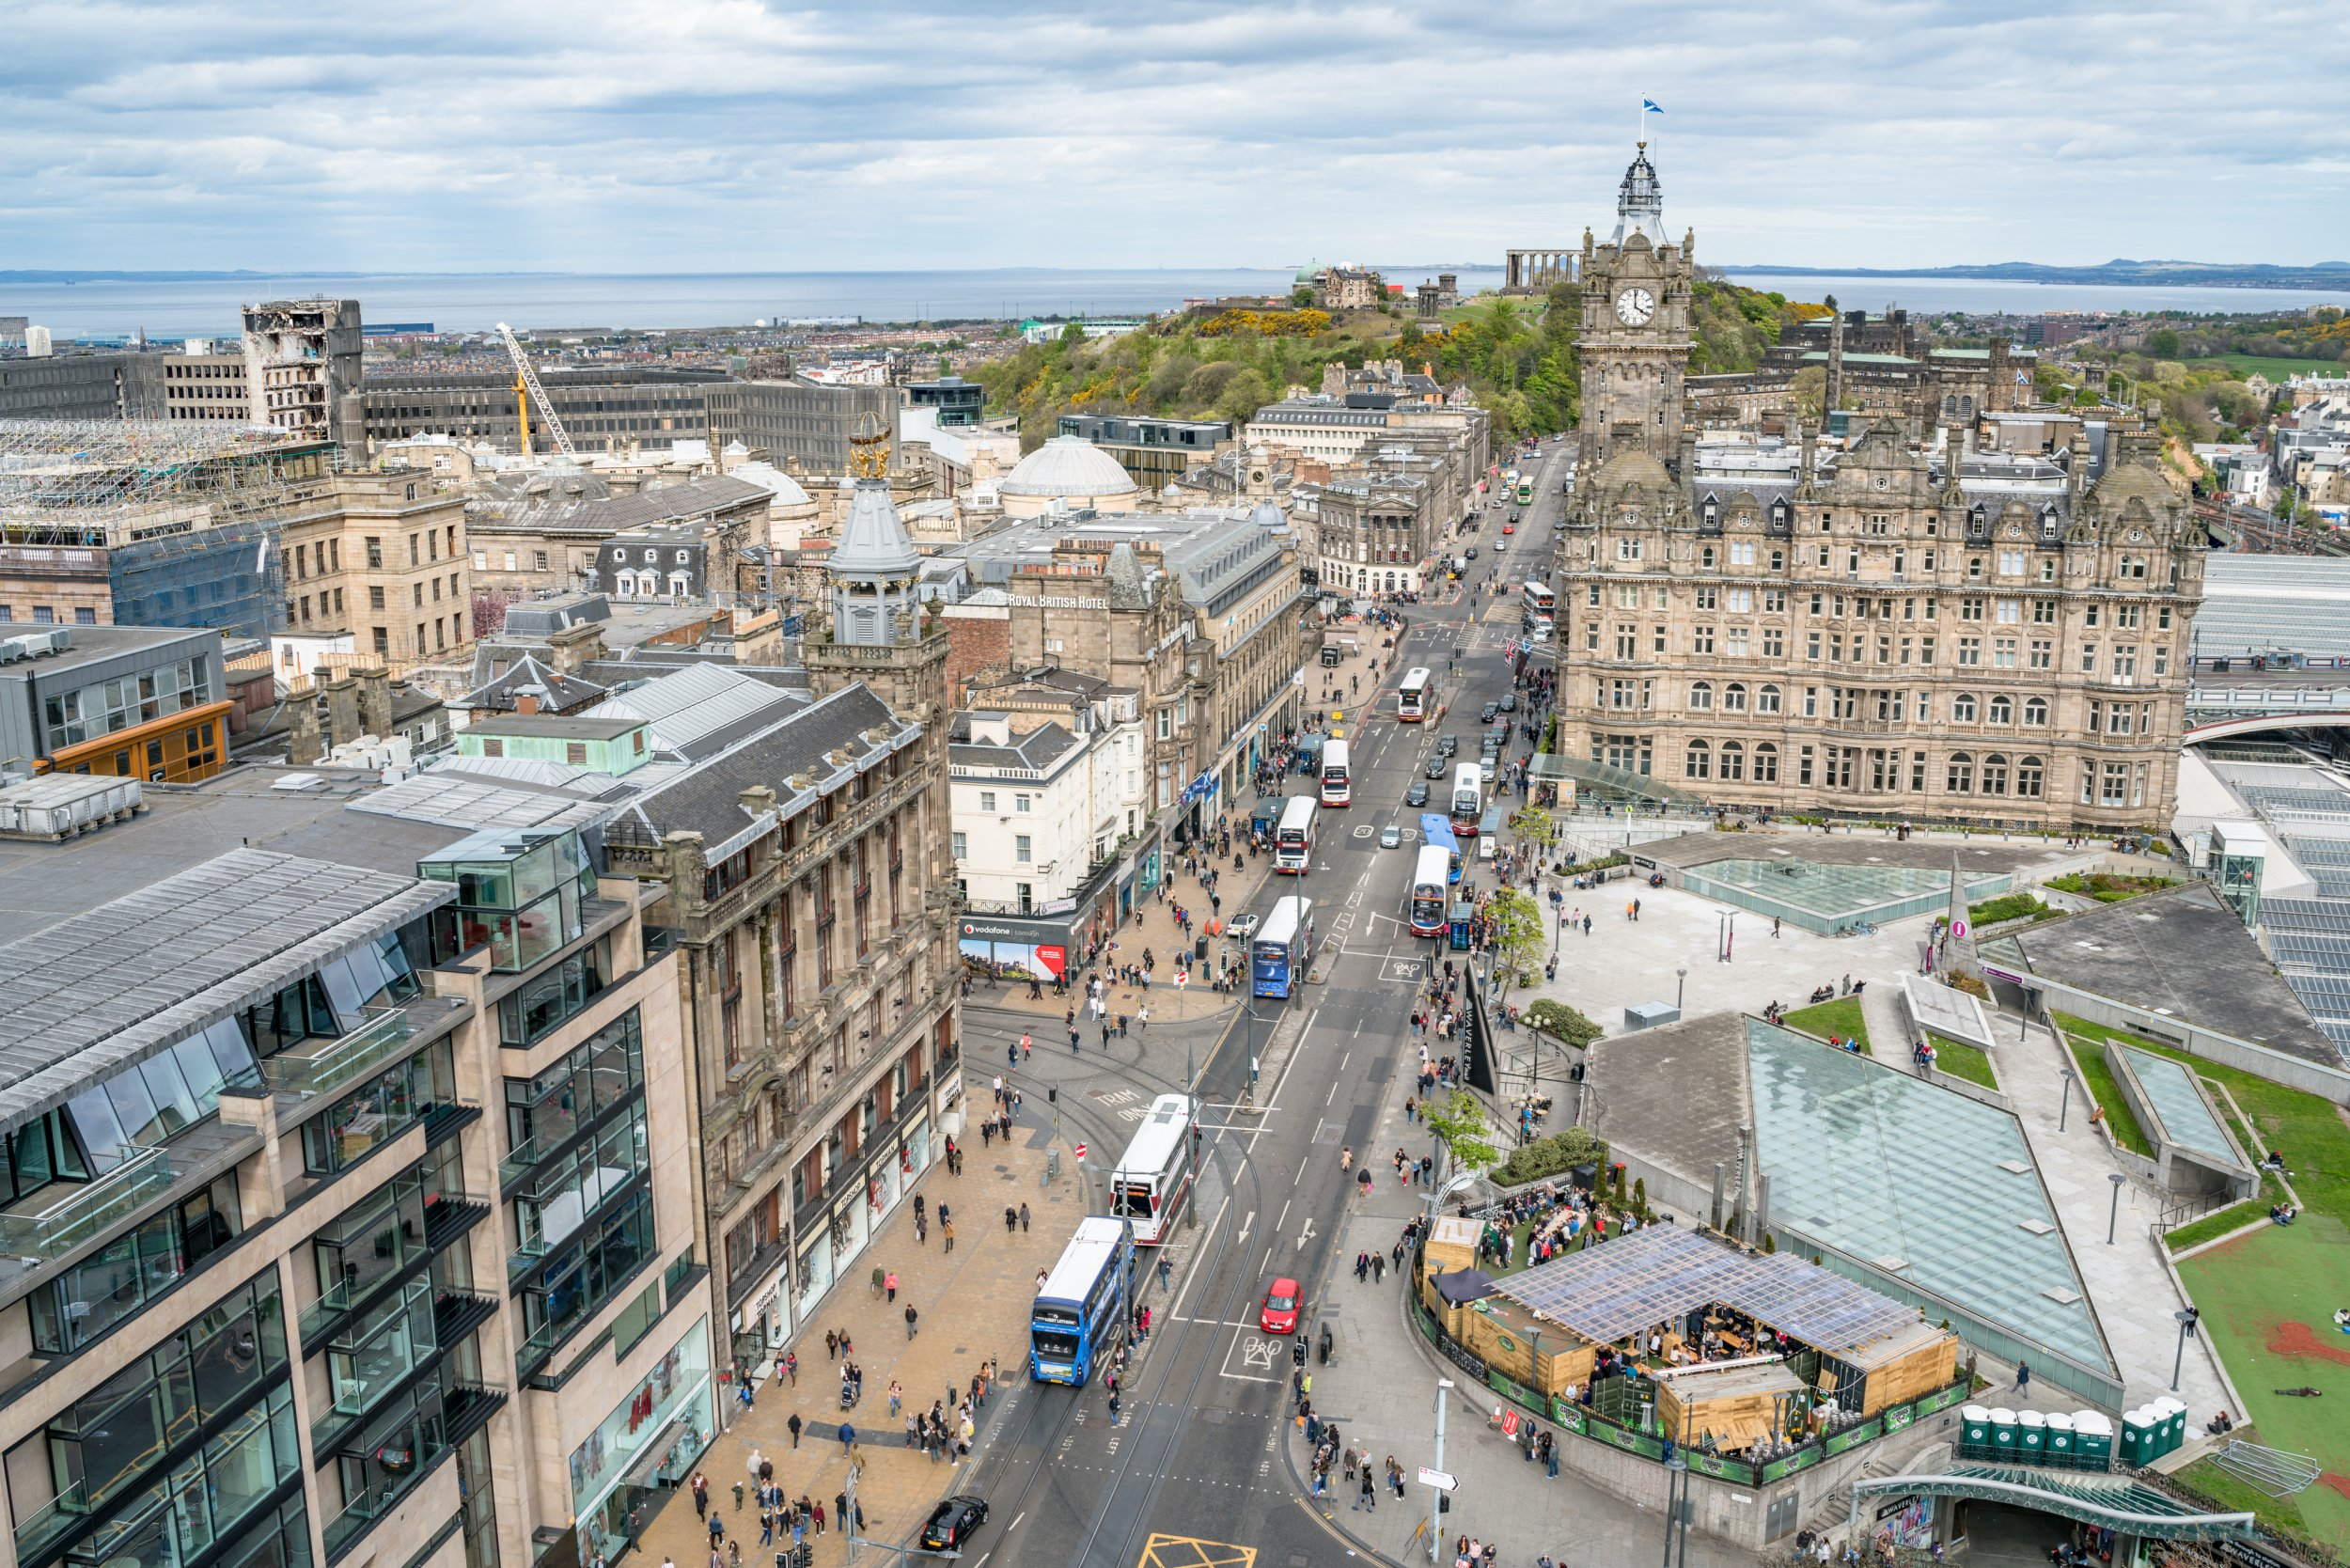 United Kingdom, UK, Scotland, Edinburgh, Princes Street Gardens, Great Britain, Princes Street Gardens with the Royal Mile buildings in the background